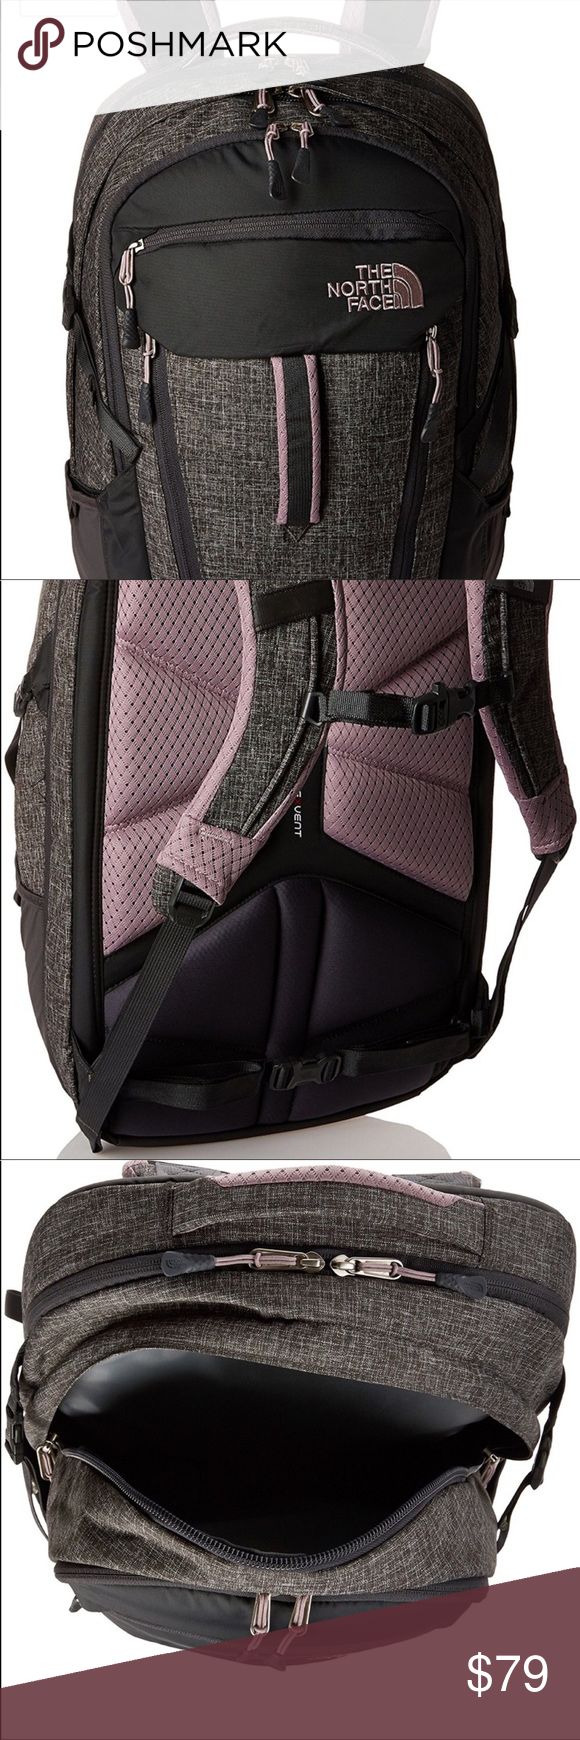 Our Favorite Laptop Backpacks  Reviews by Wirecutter  a8b445944c673